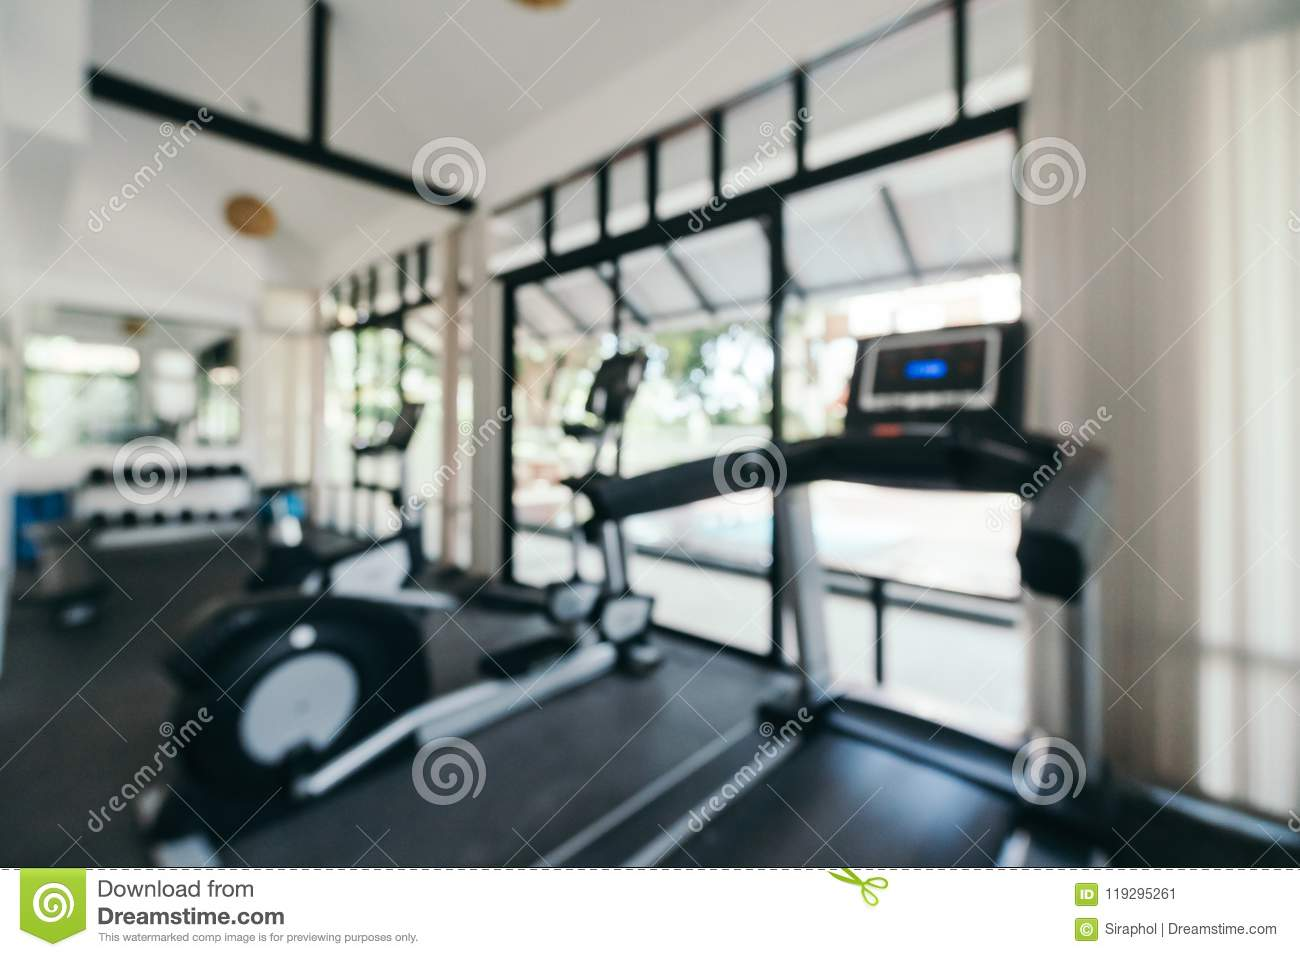 Abstract blur and defocused fitness equipment interior of gym room